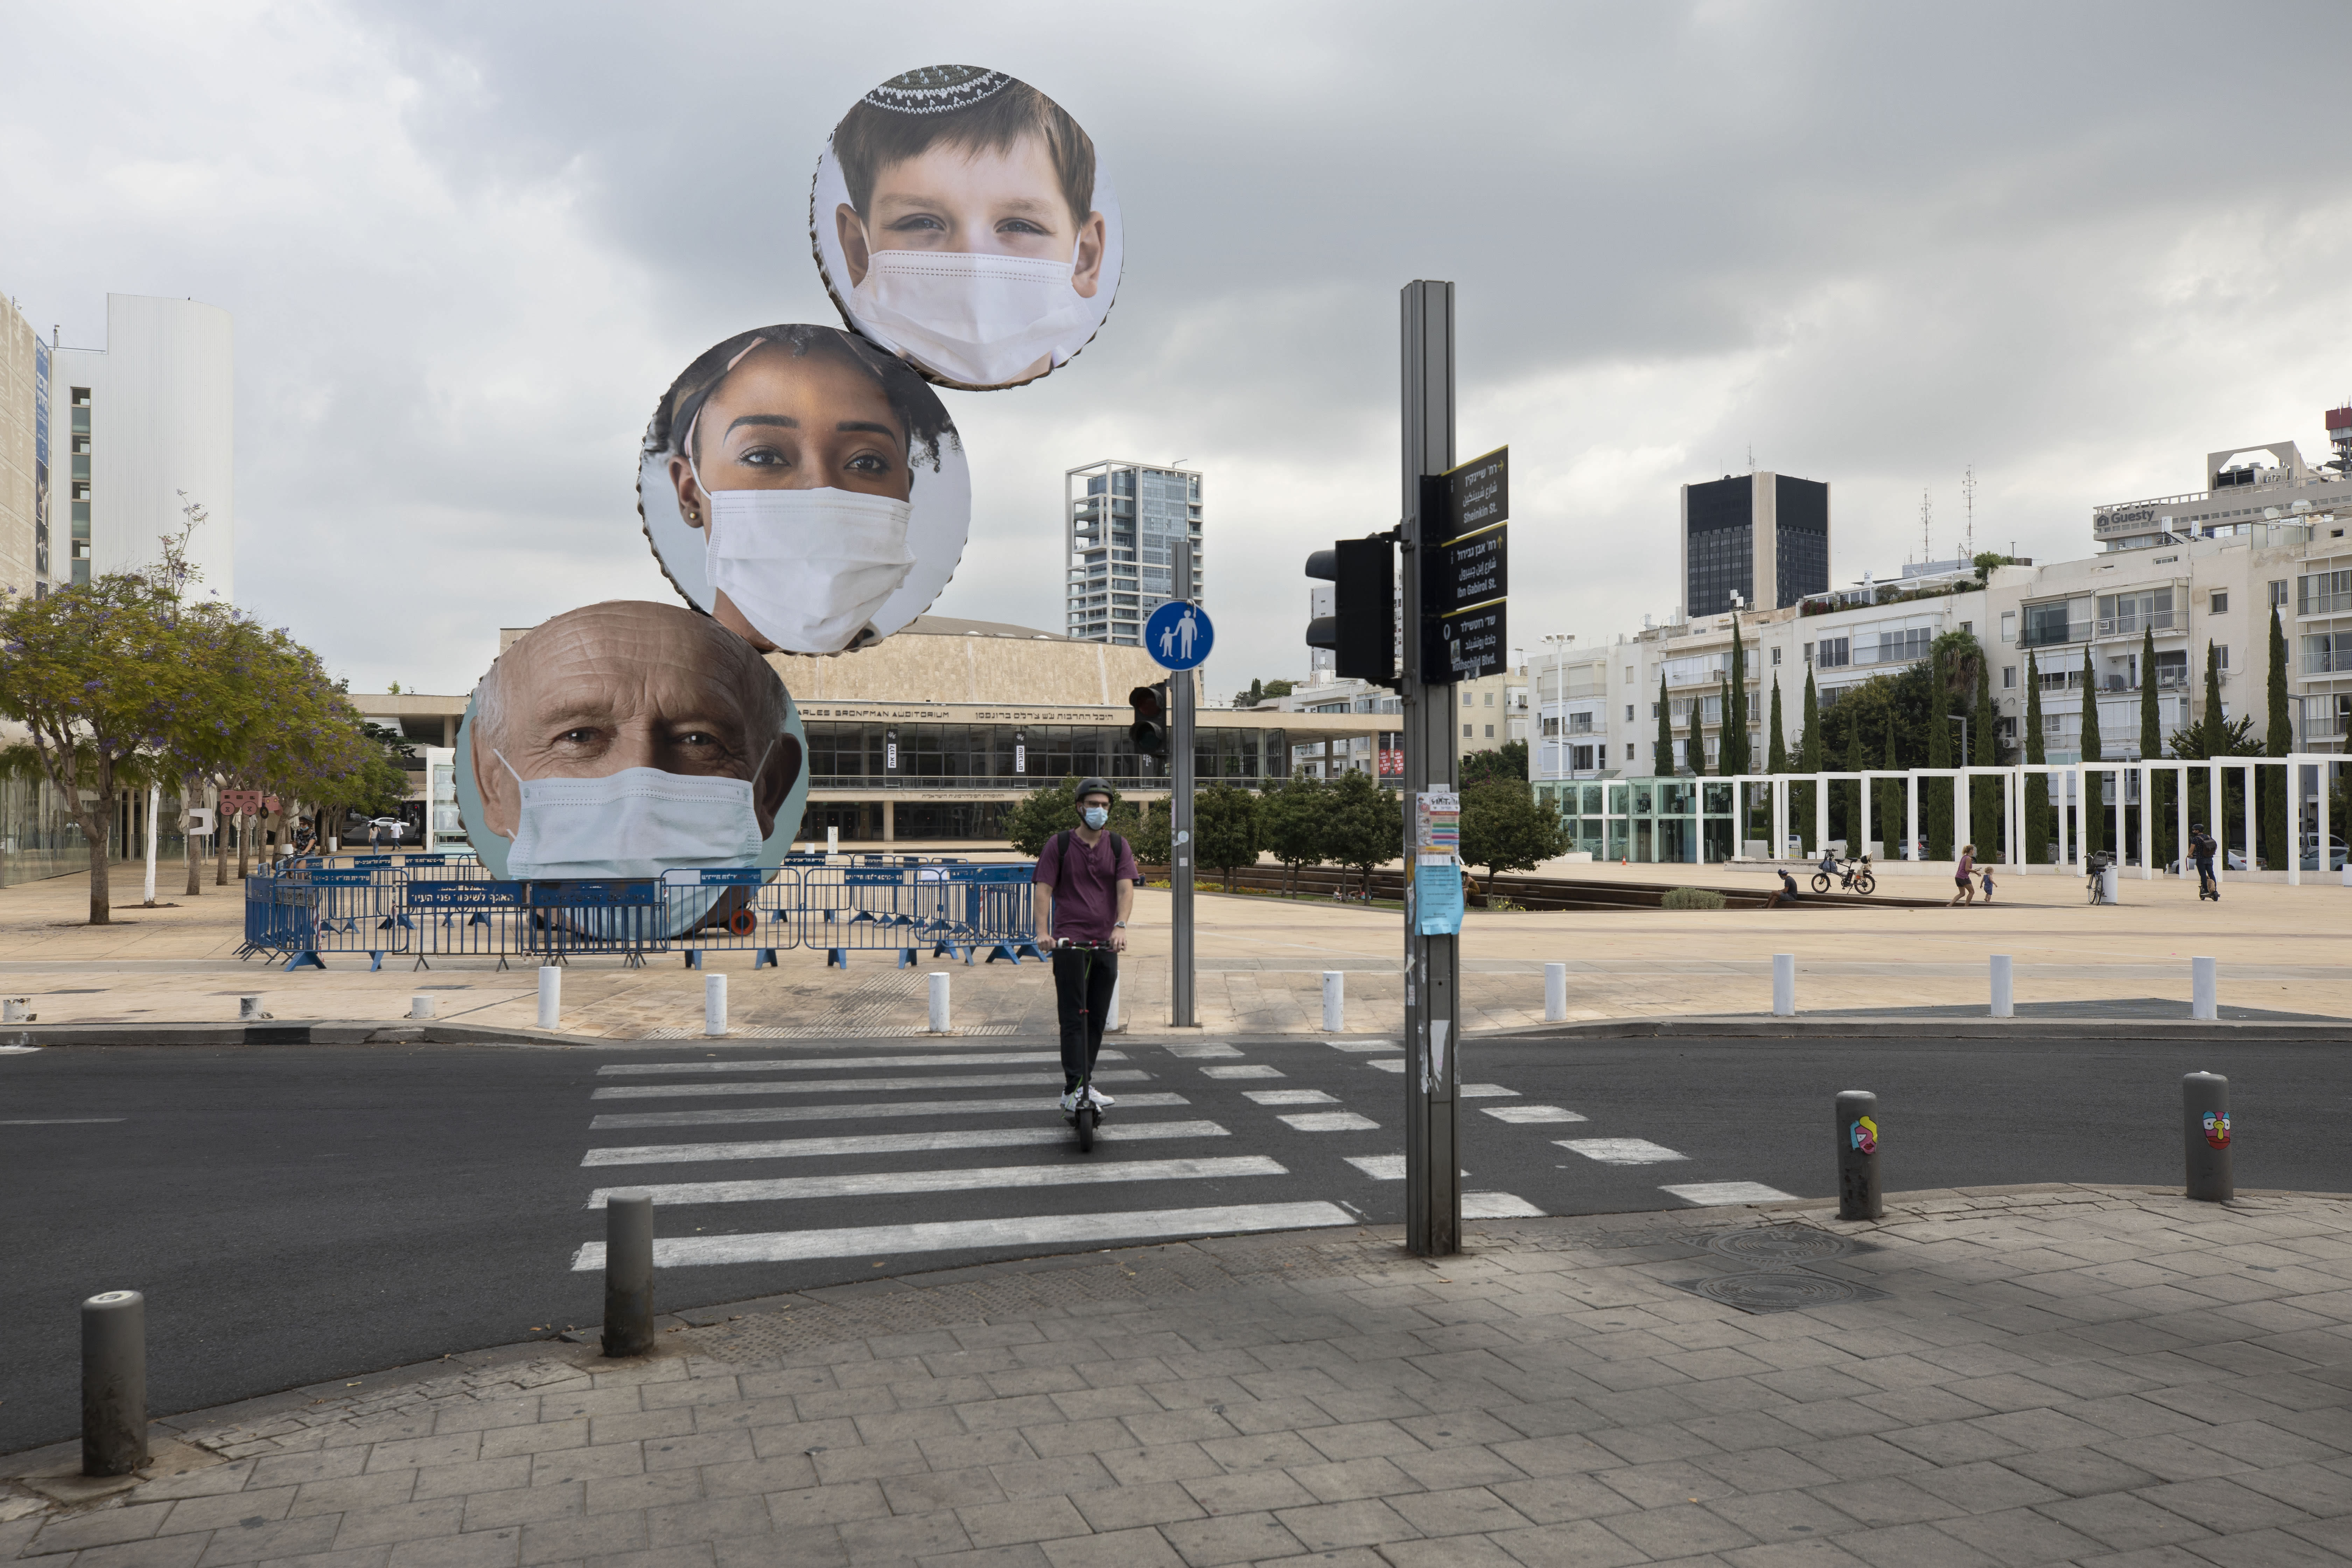 An Israeli woman rides past banners encouraging people to wear face masks in Tel Aviv, Israel, Thursday, Sept. 24, 2020. Israeli Prime Minister Benjamin Netanyahu on Wednesday announced plans for a strict, two-week nationwide lockdown in a bid to slow a raging coronavirus outbreak. (AP Photo/Sebastian Scheiner)